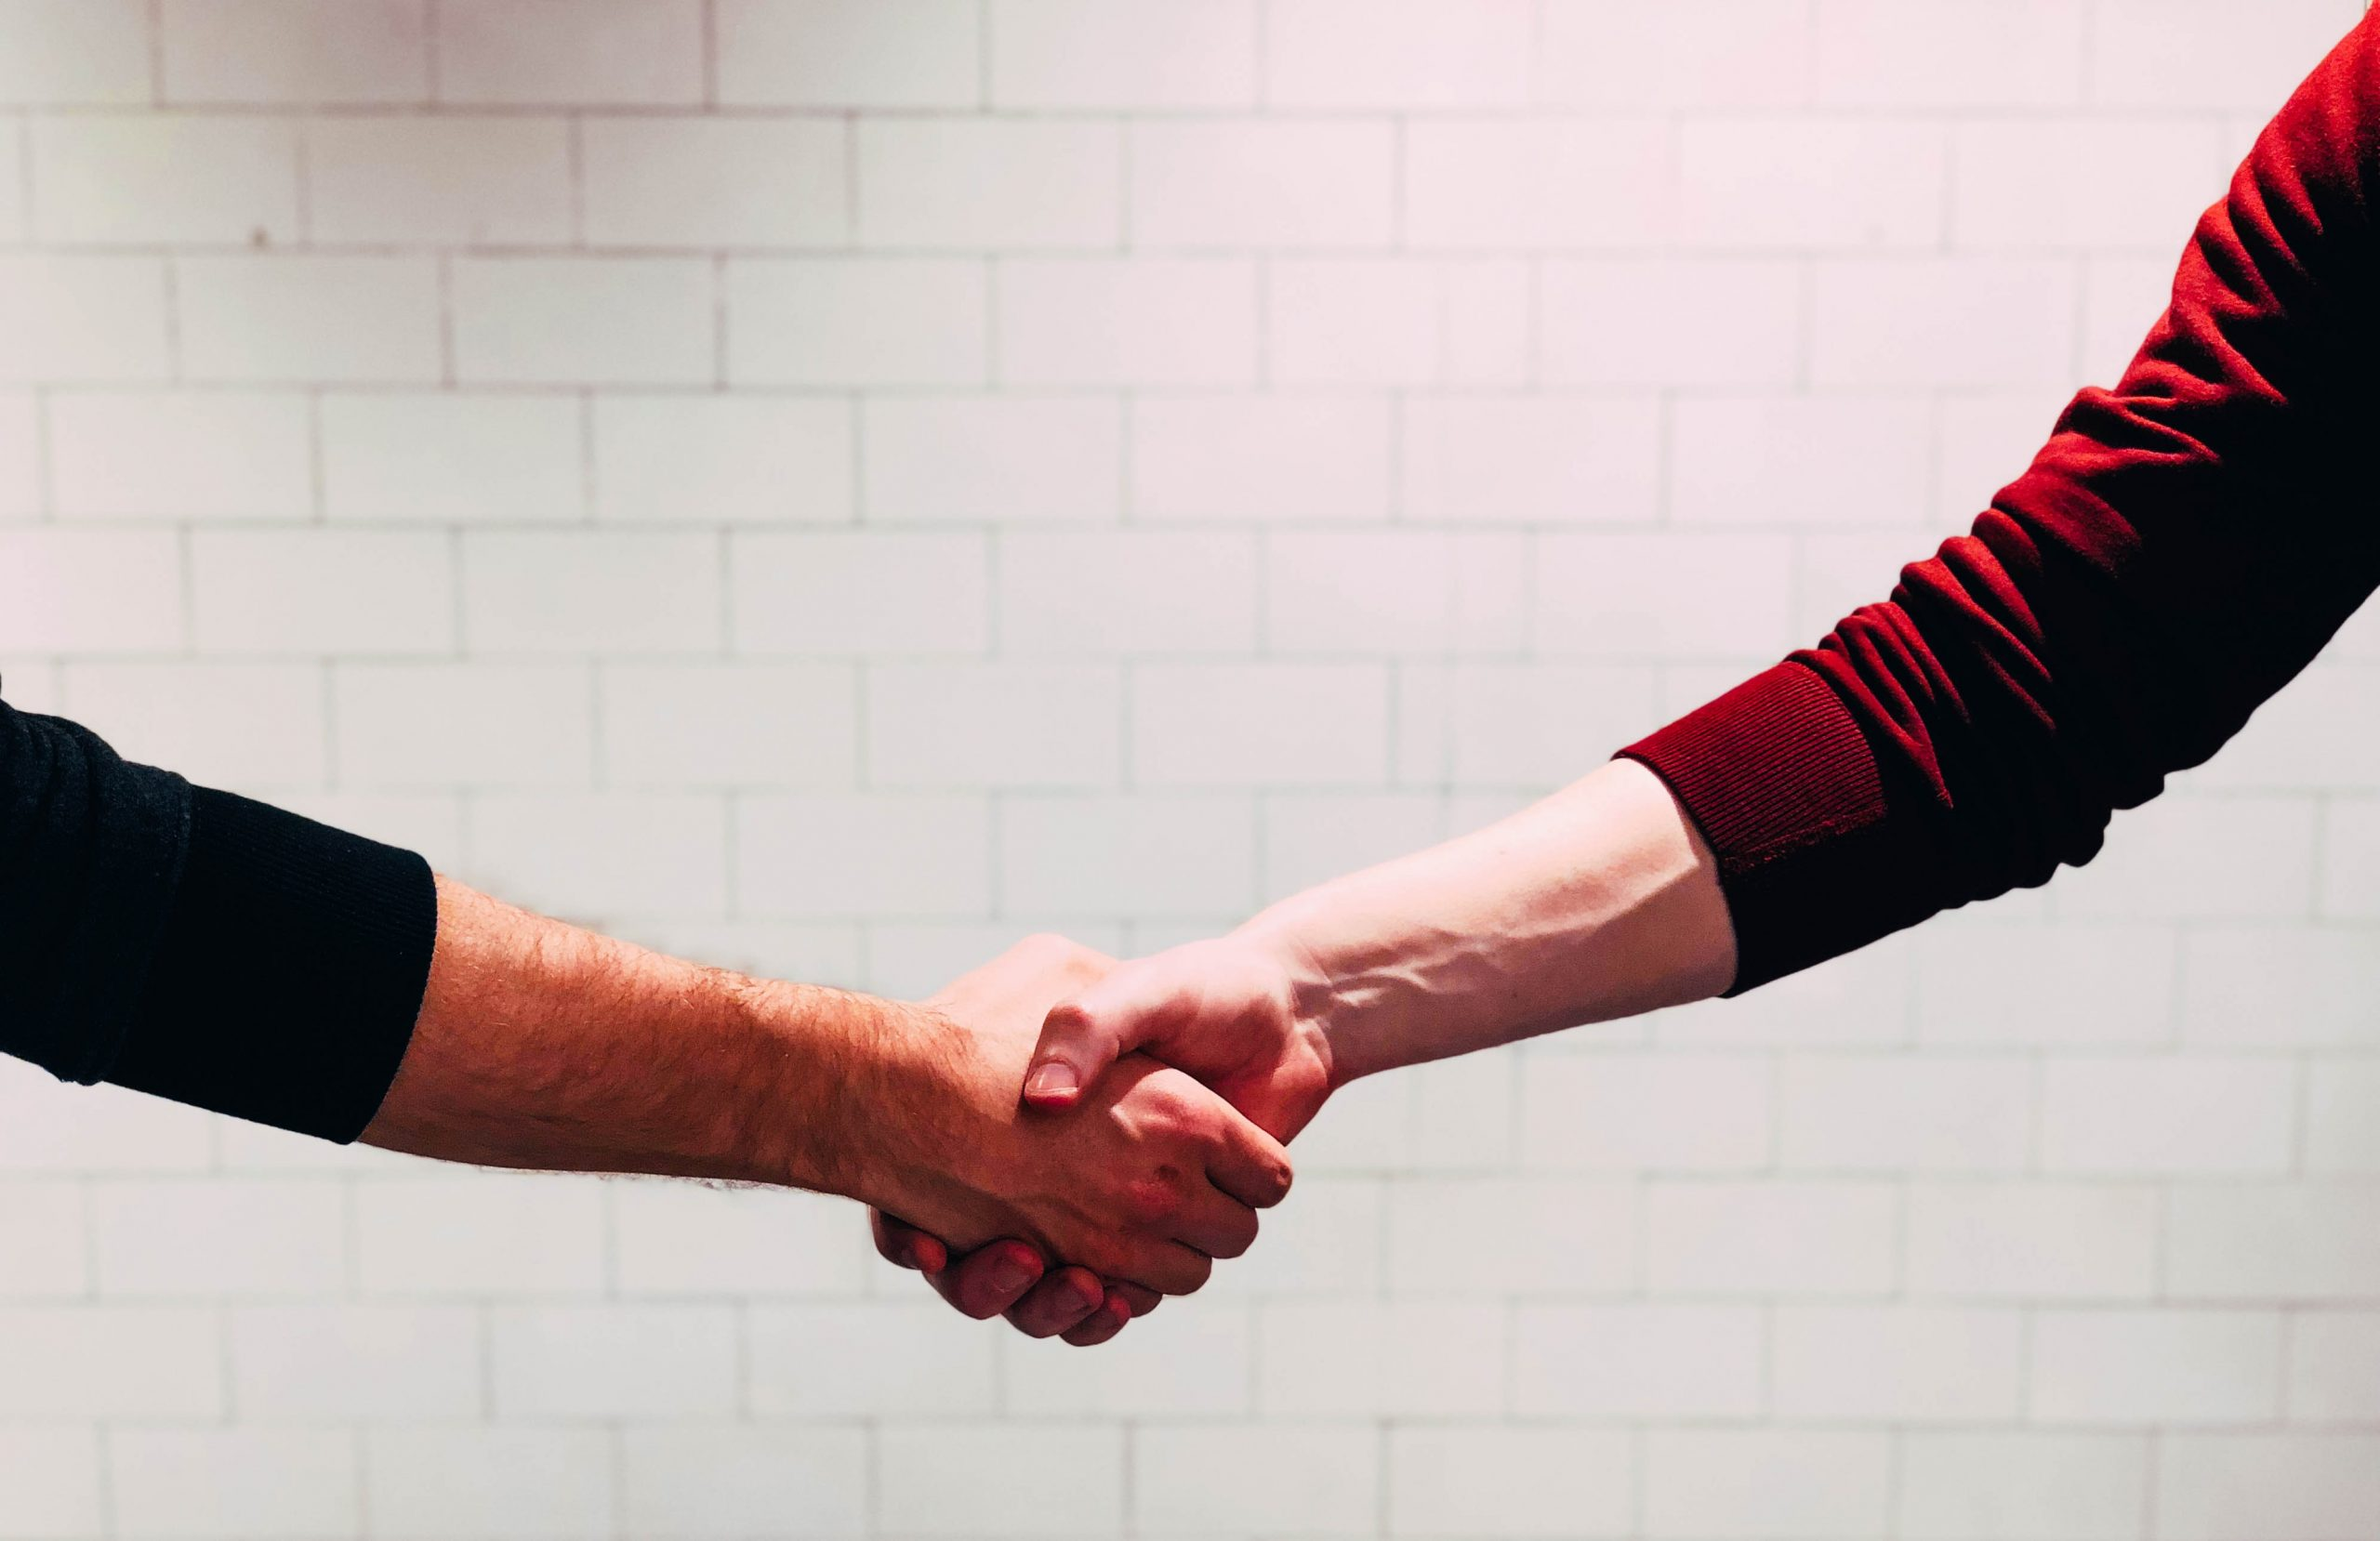 Two people shaking hands in front of a white wall.